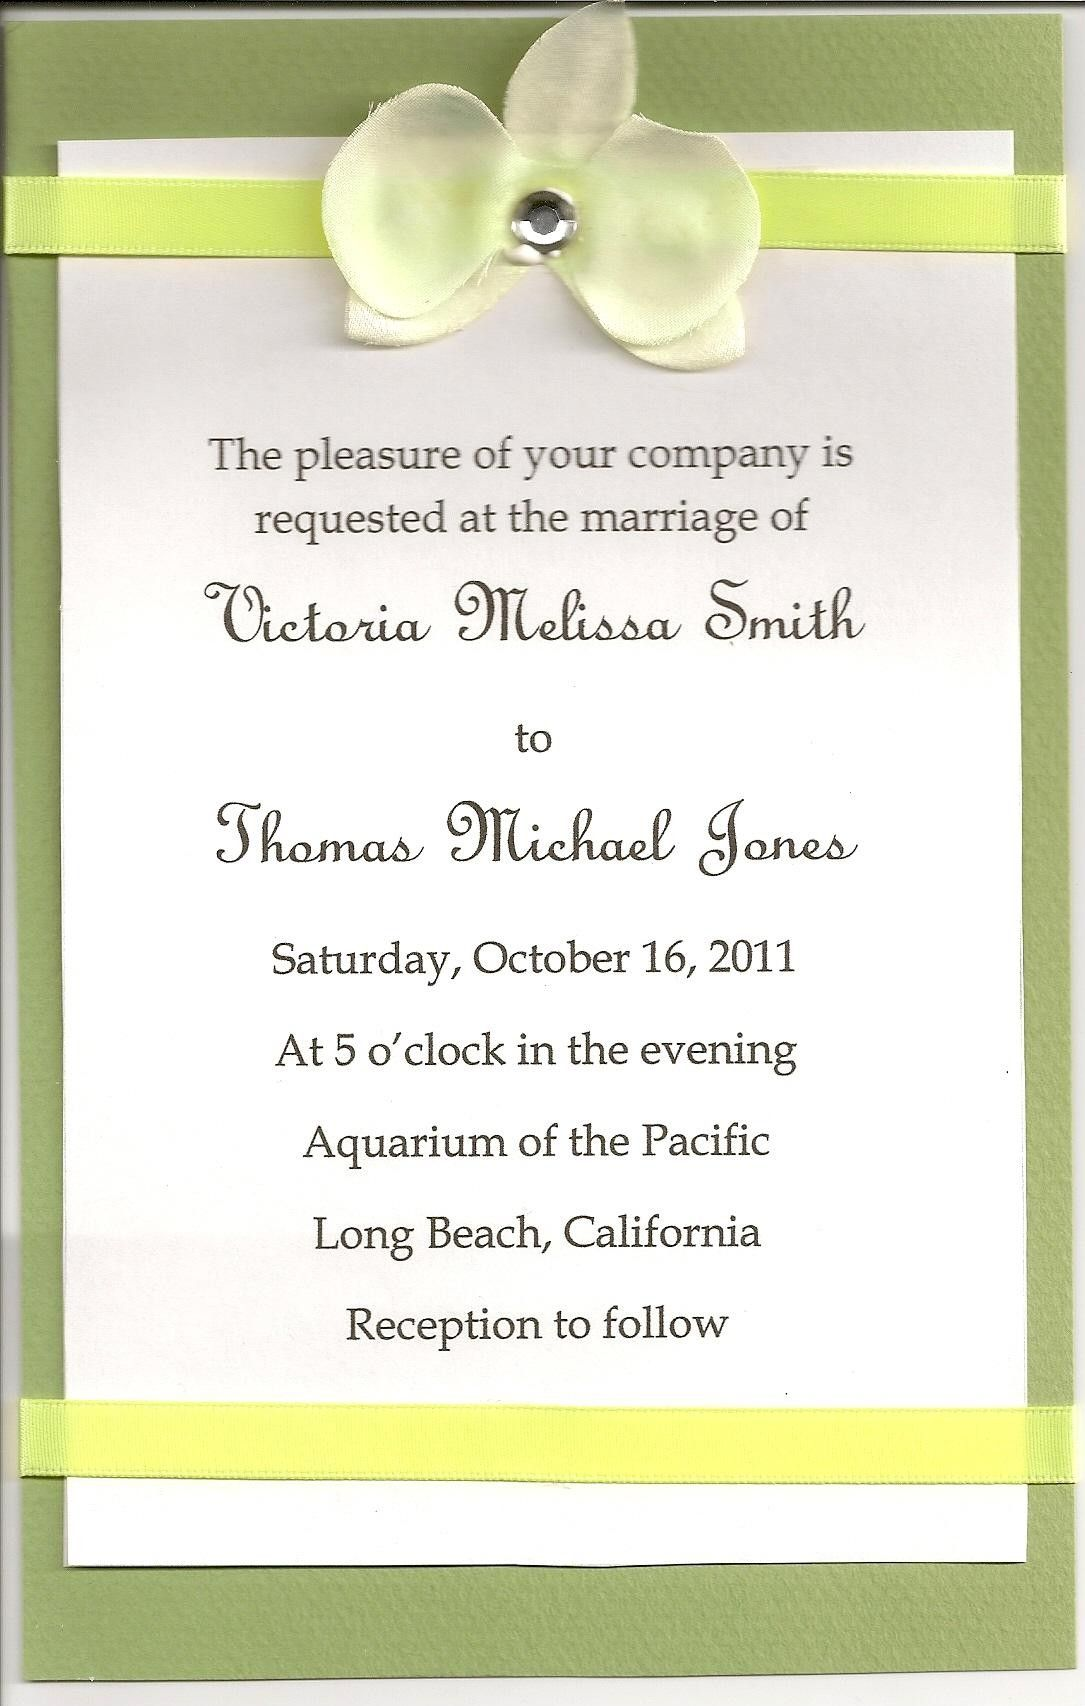 invitation wedding templates free | Do It Yourself Wedding ...